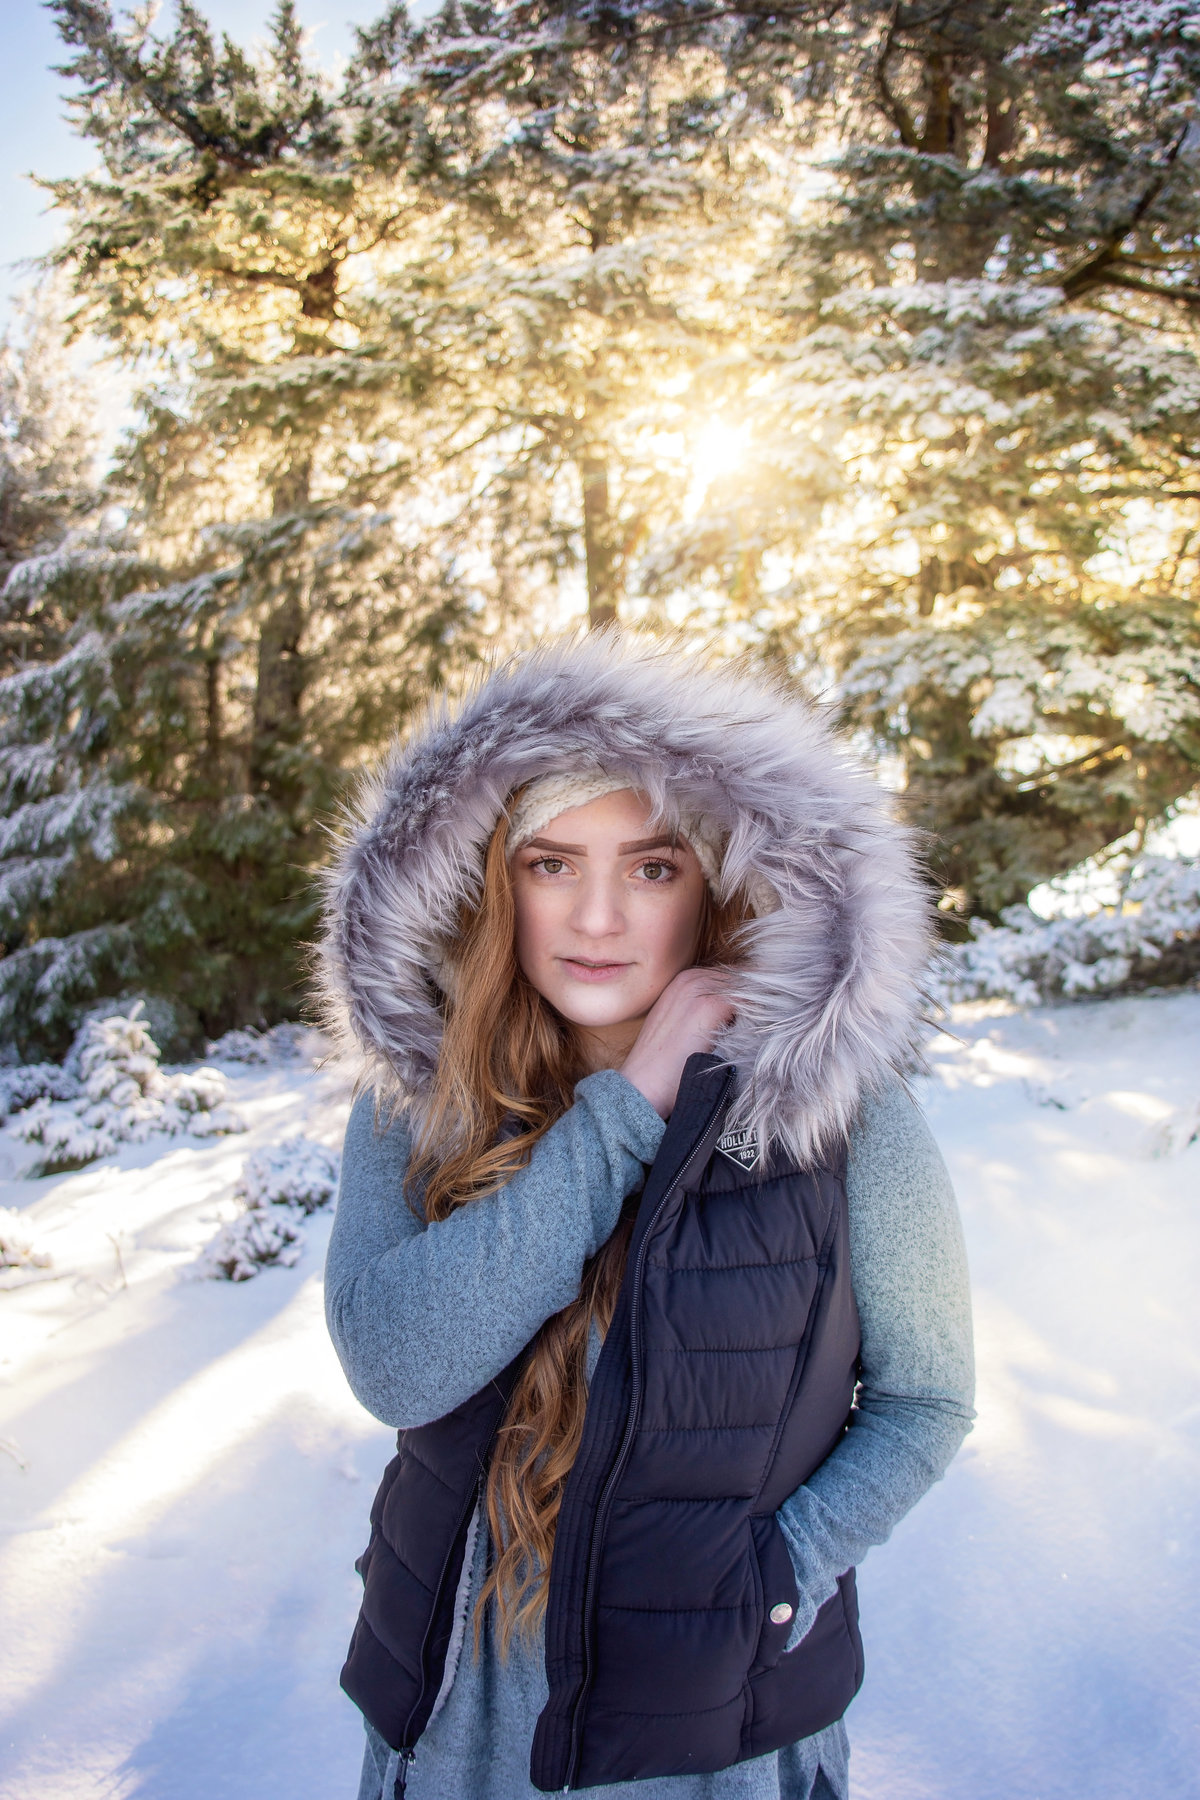 Redway-California-senior-portrait-photographer-Parky's-Pics-Photography-Humboldt-County-Snow-session-Mountain-top-Monument-Mountain-Rio-Del-Ca 8.jpg